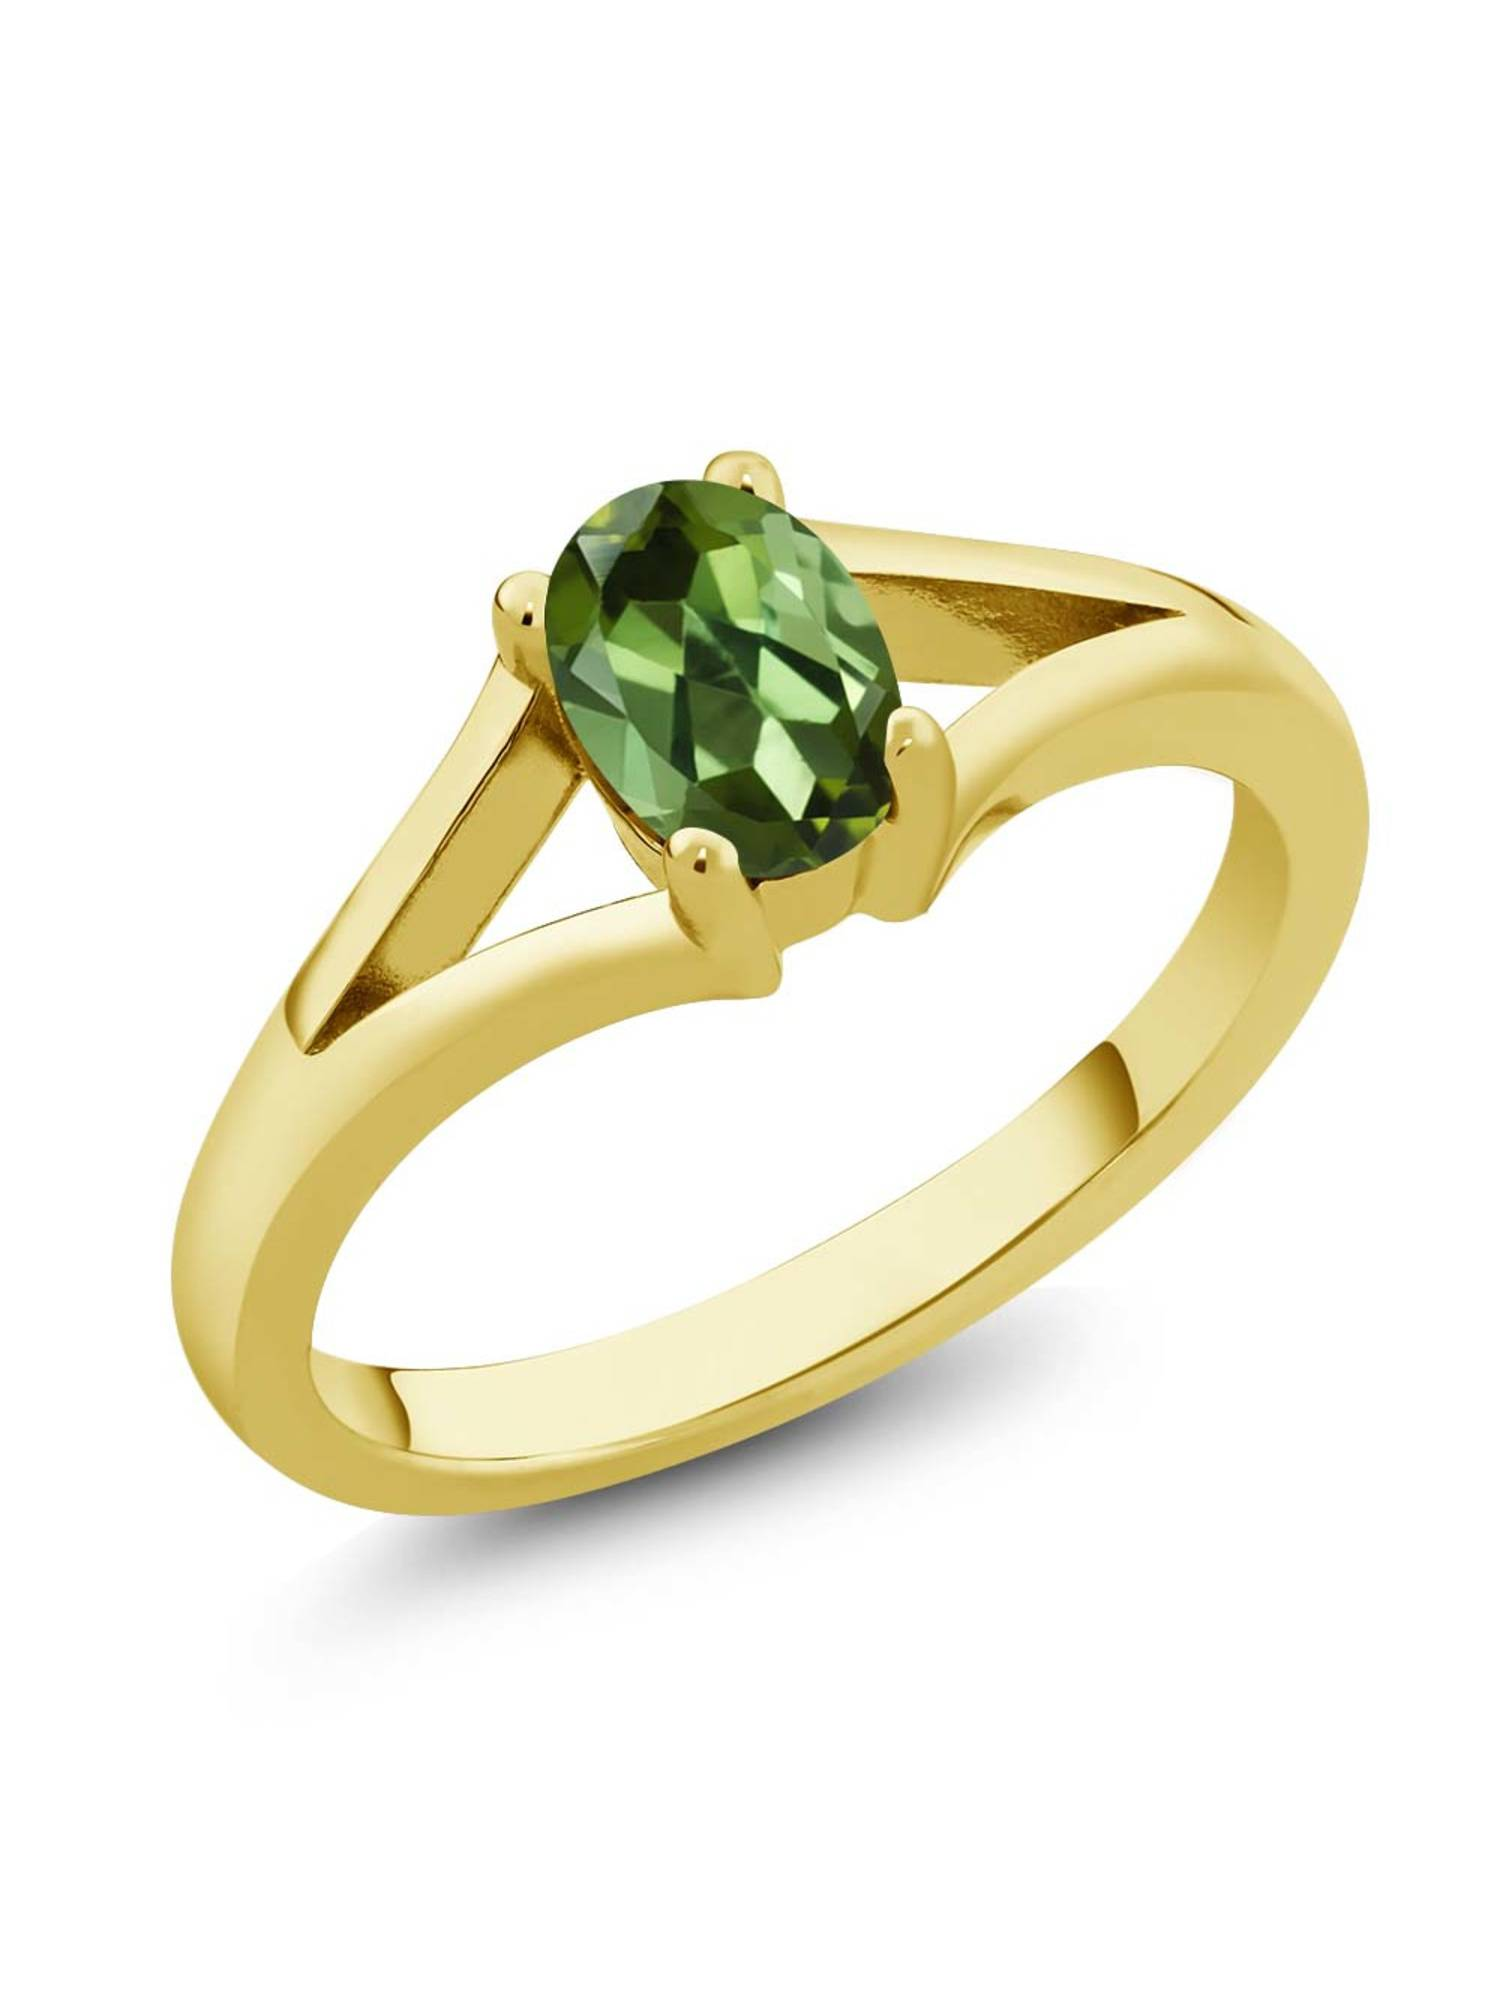 0.85 Ct Oval Green Tourmaline Yellow Gold Plated Silver Solitaire Ring by